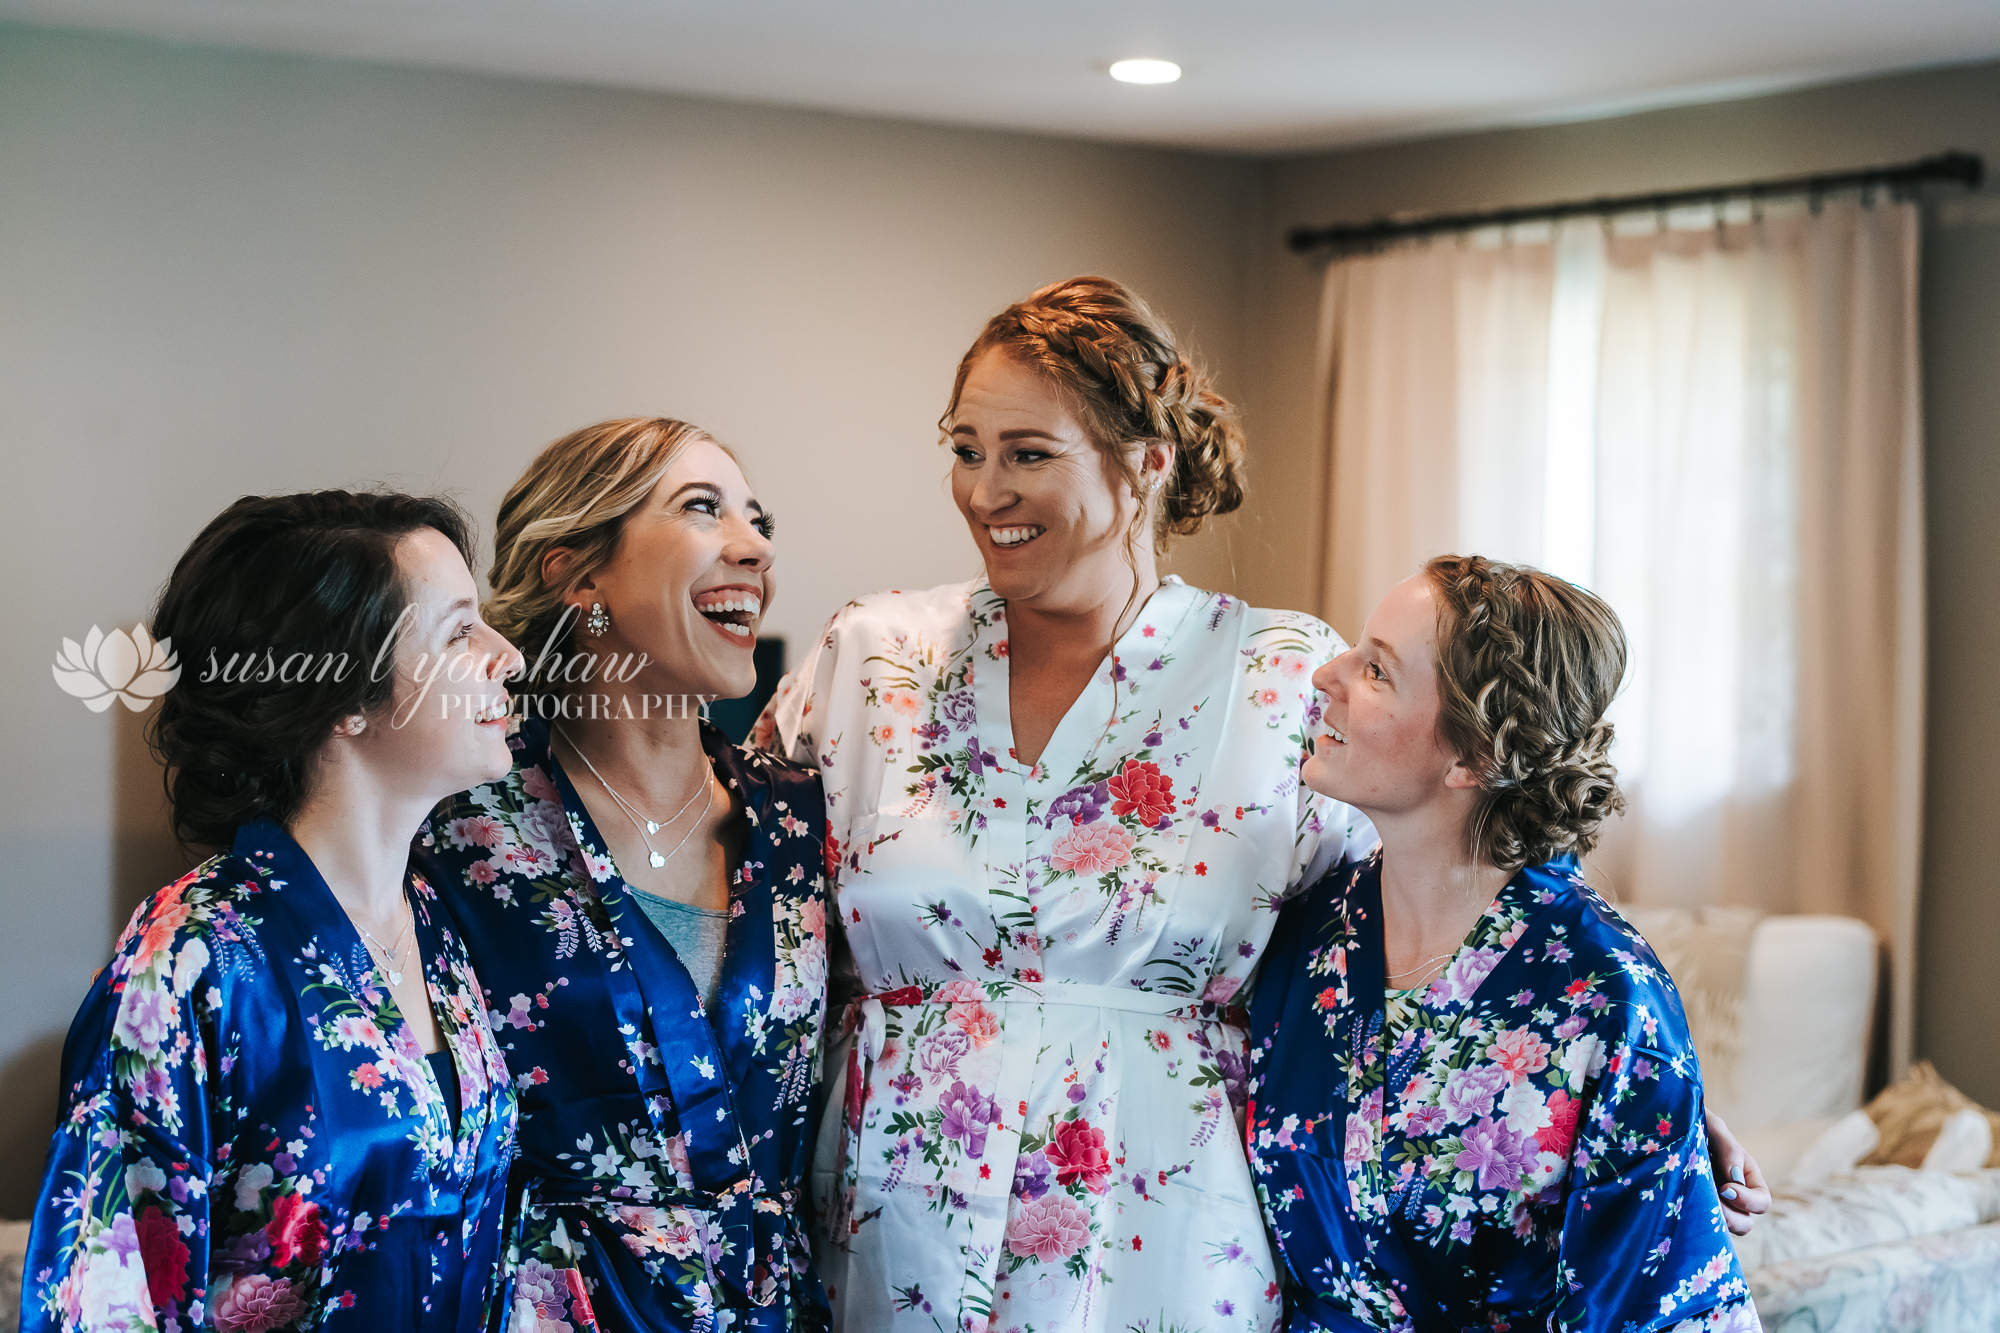 Erin and Jason Wedding Photos 07-06-2019 SLY Photography-19.jpg